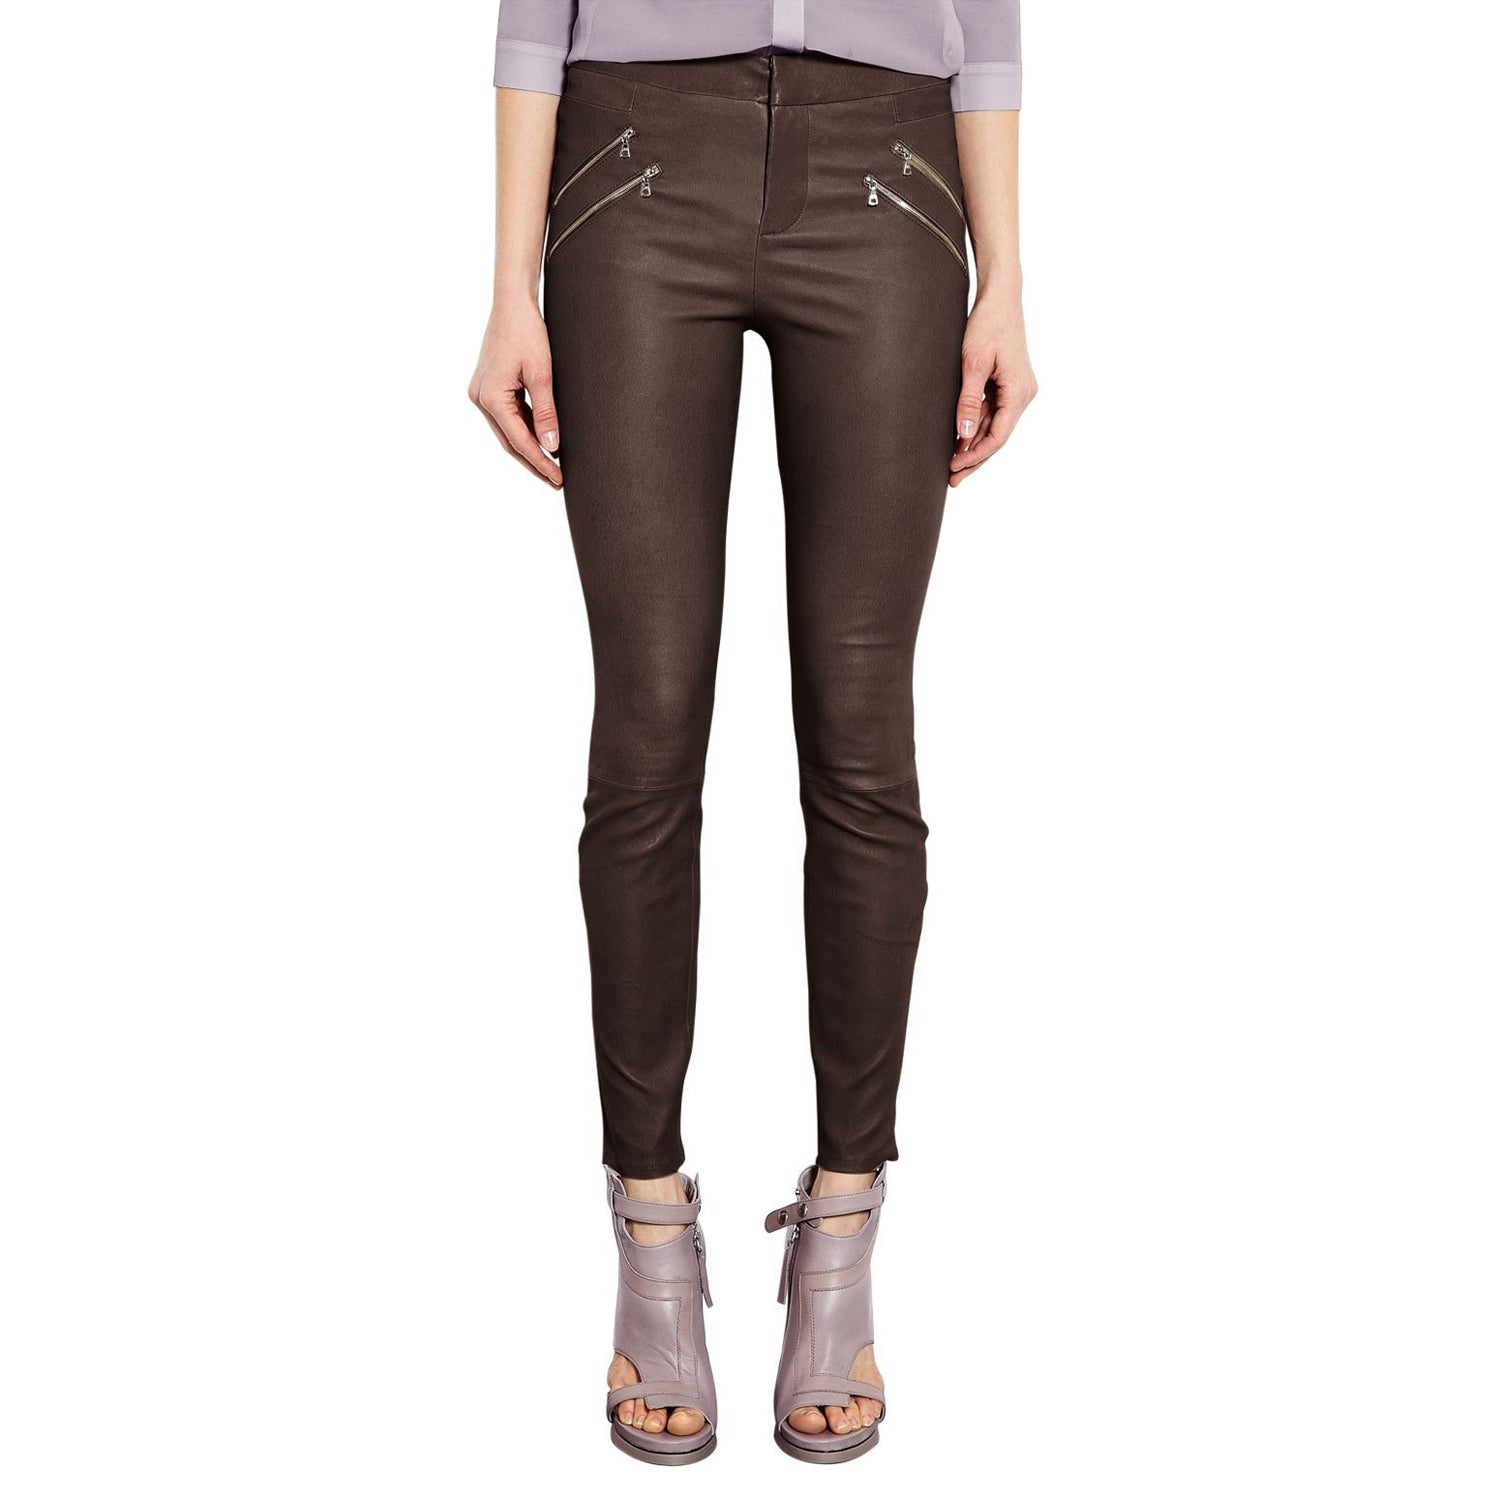 Brown leather pants (style #7) - Lusso Leather - 1